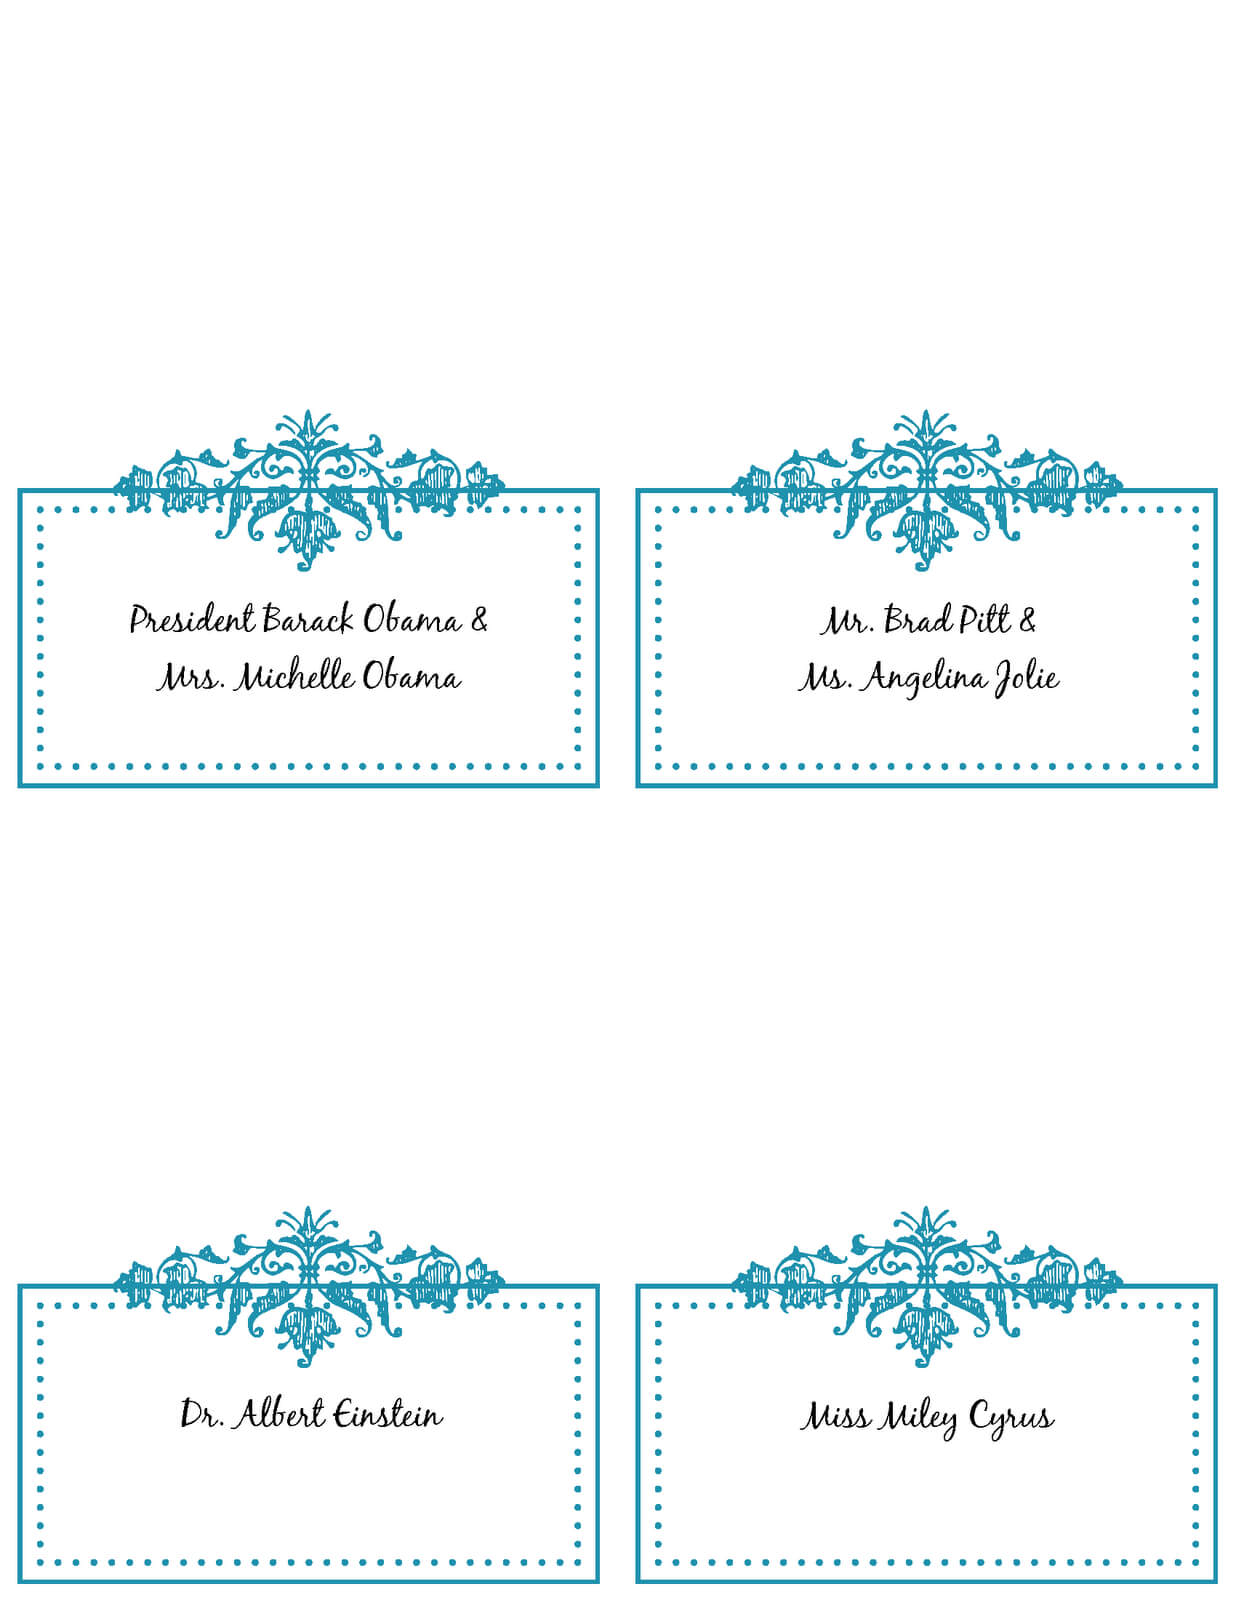 013 6Tyorxxgc Place Card Template Free Magnificent Ideas Regarding Wedding Place Card Template Free Word